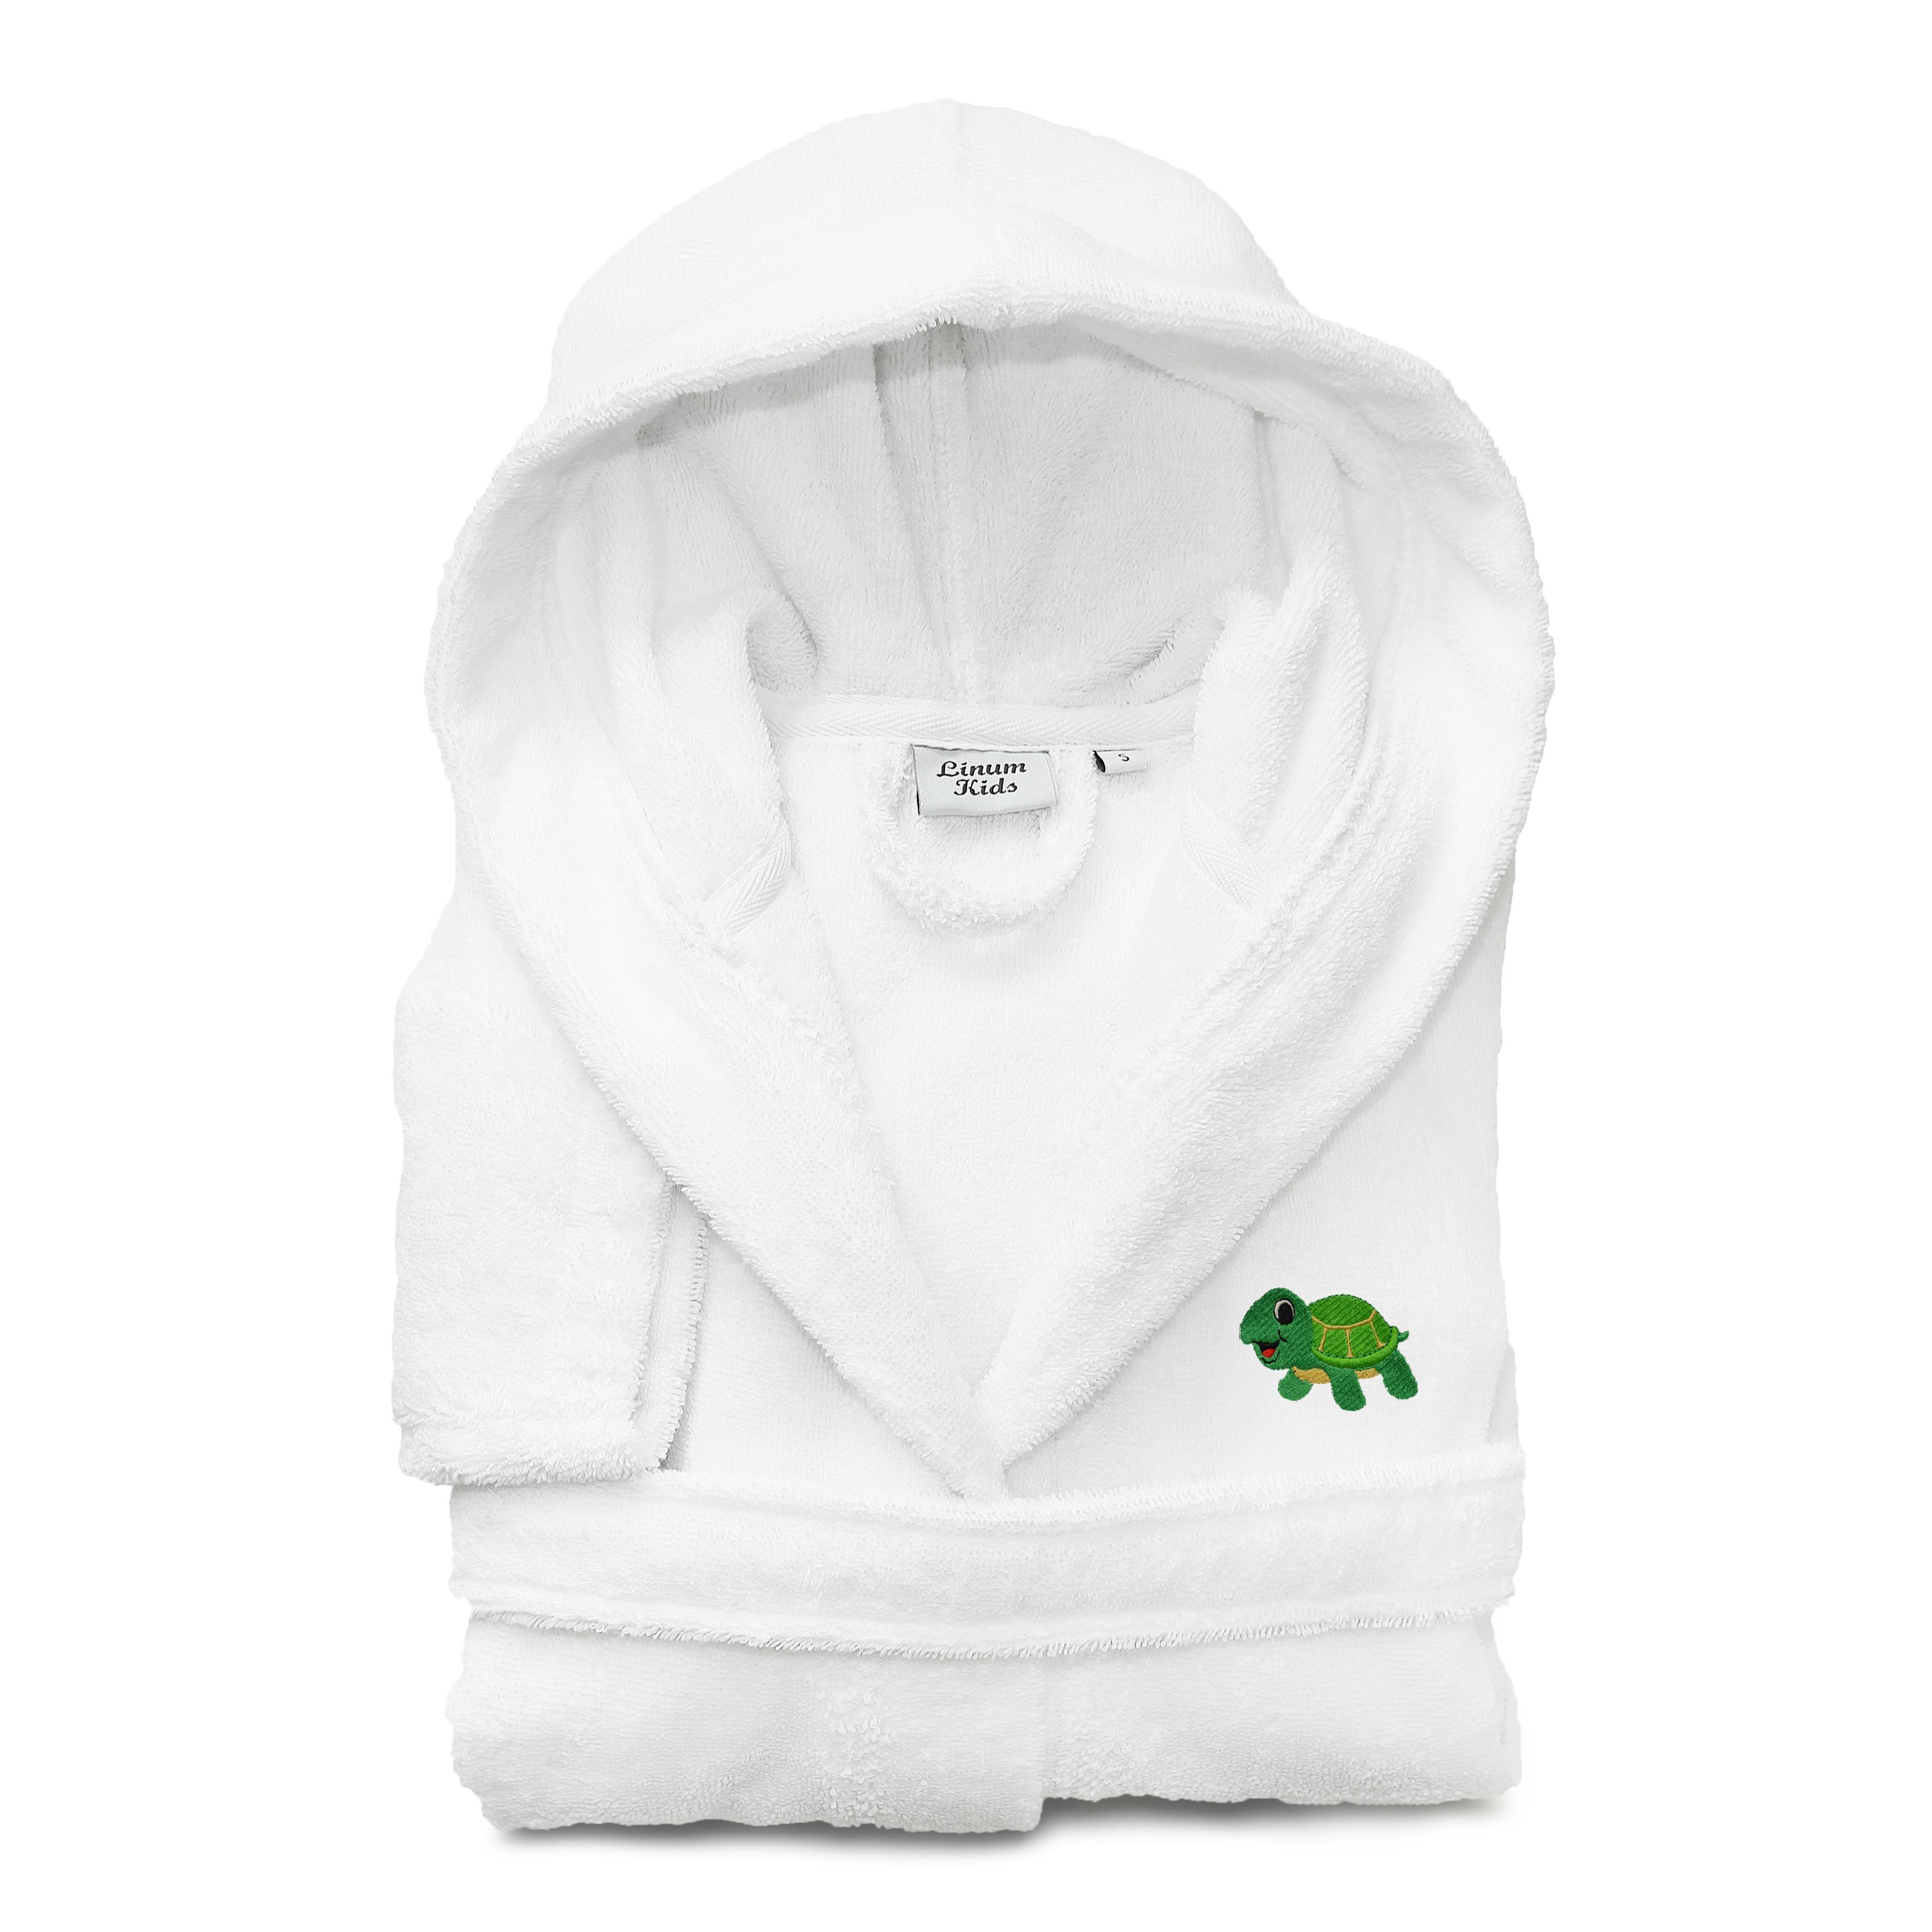 Sweet Kids Set of 3 Hooded Terry Bathrobe with Green Turtle and 2 Hand Towels